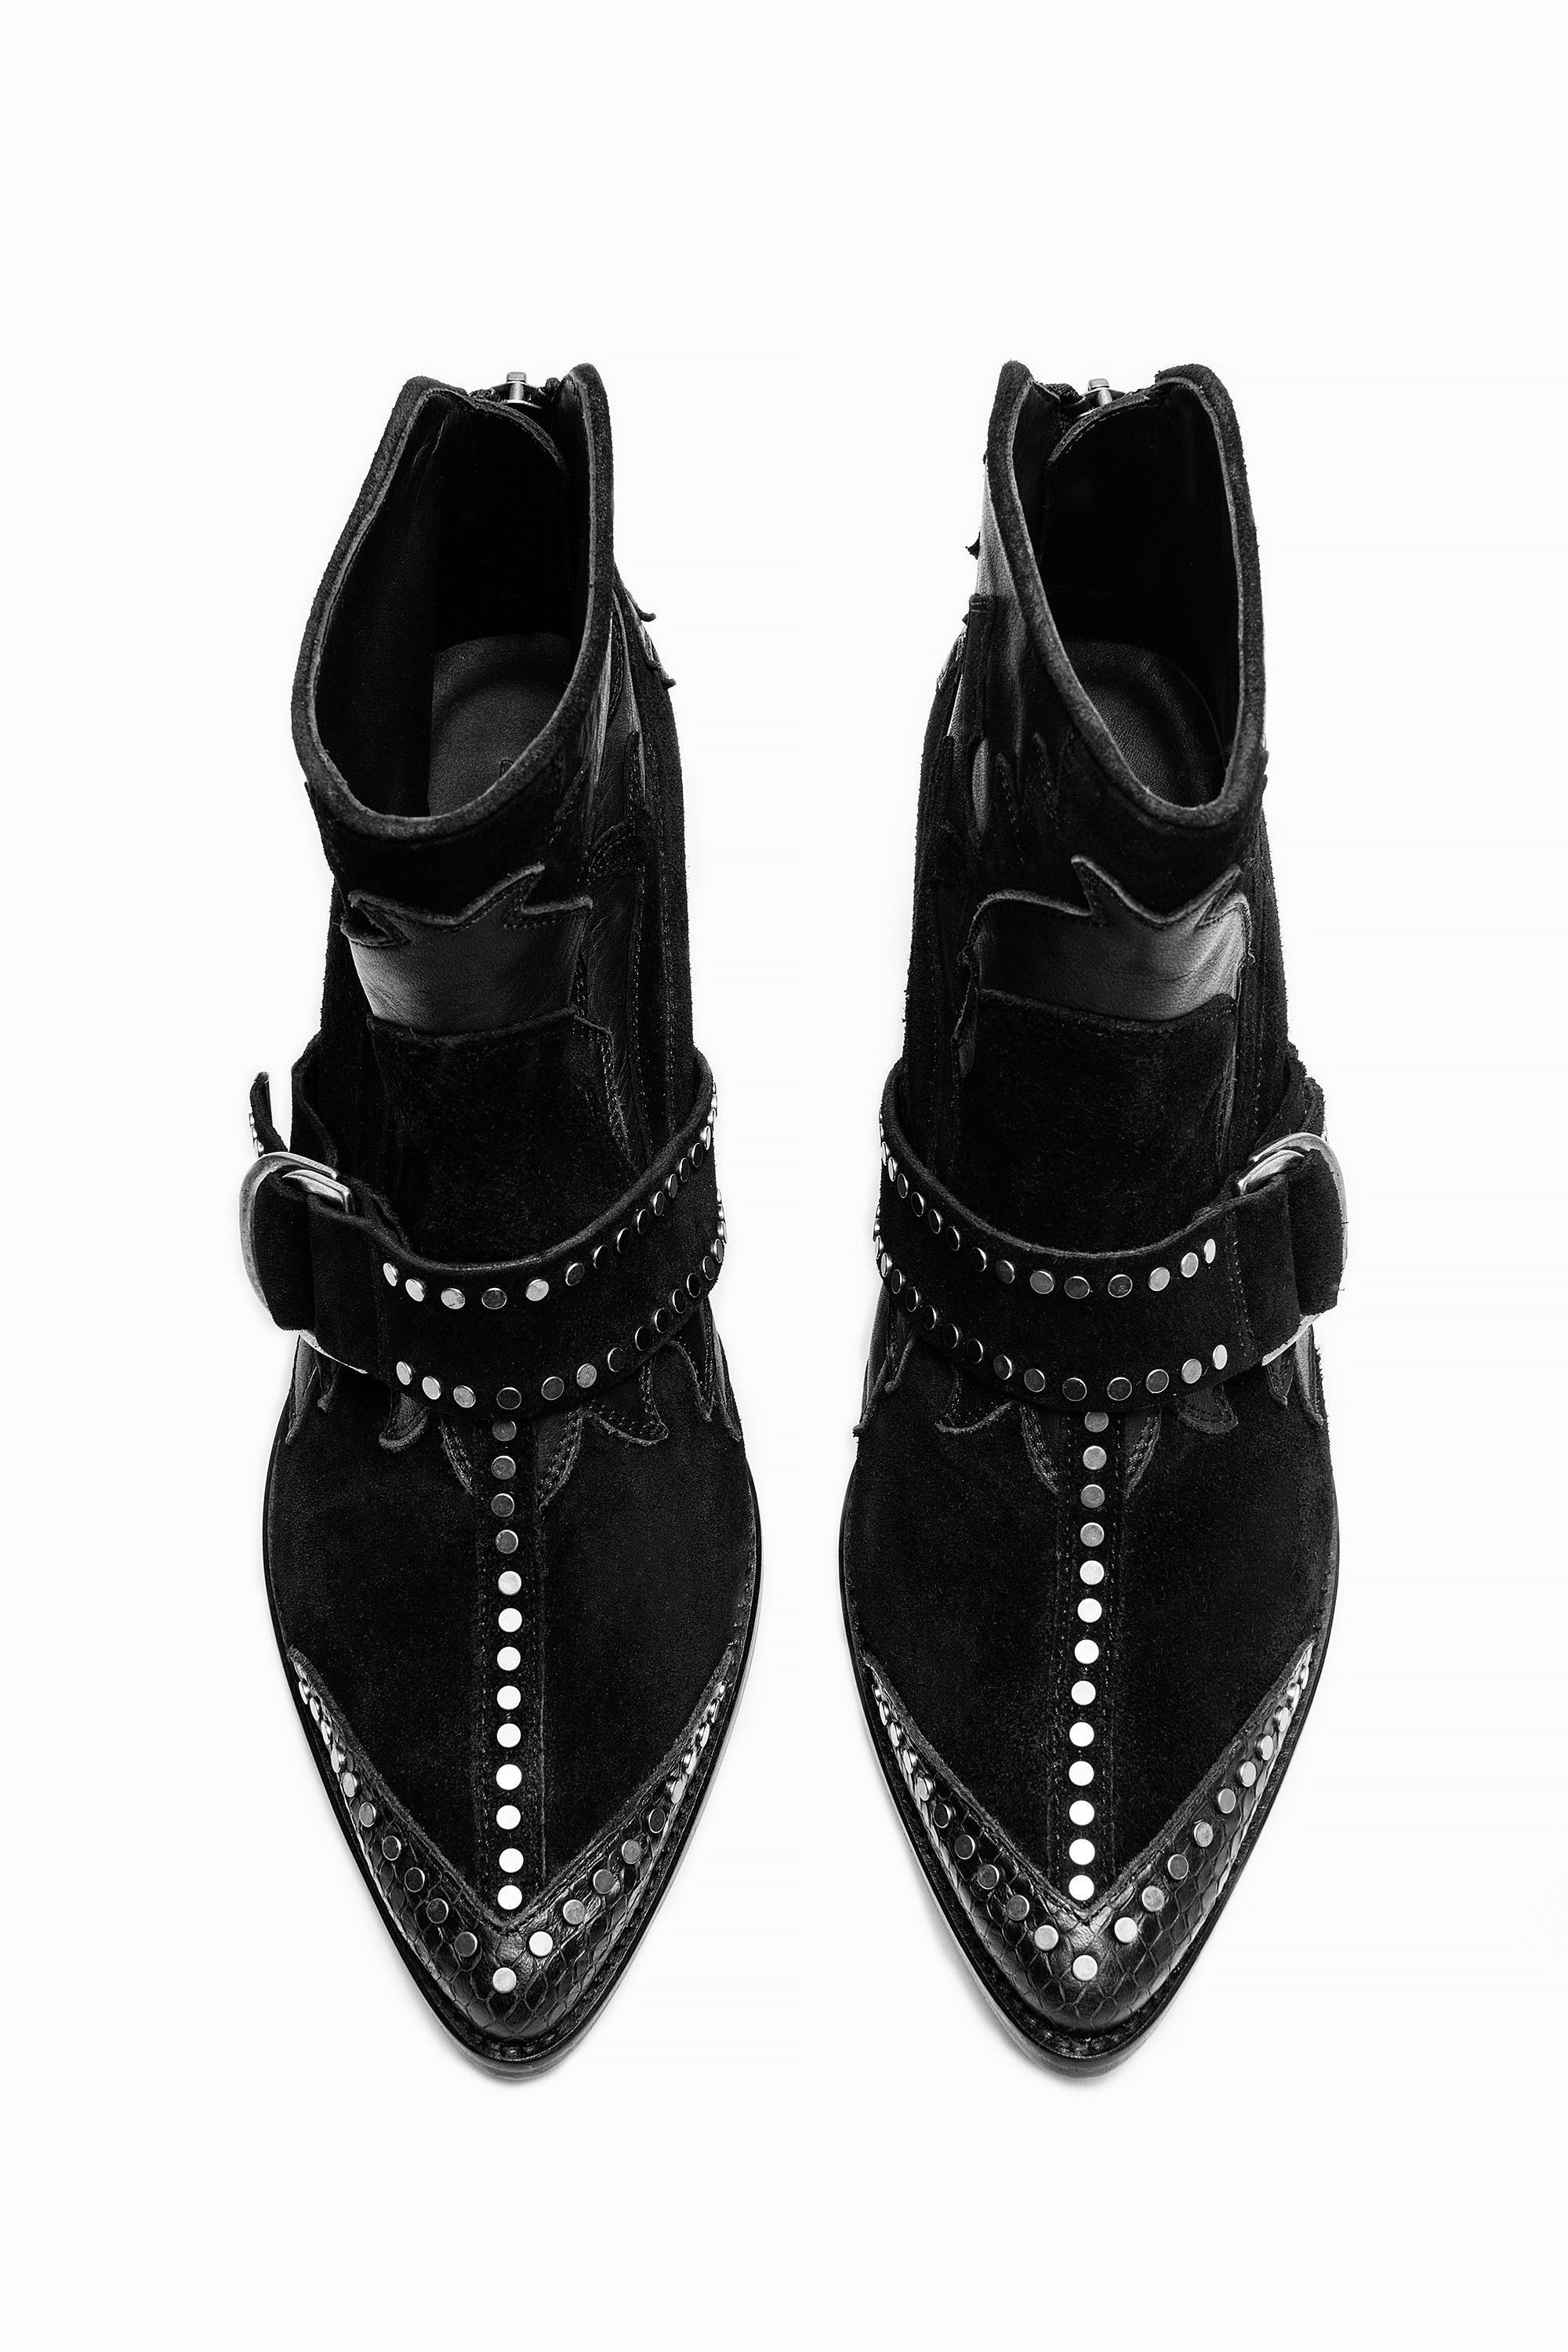 Cara Black Boots Black Zadig Voltaire Shoes In 2018